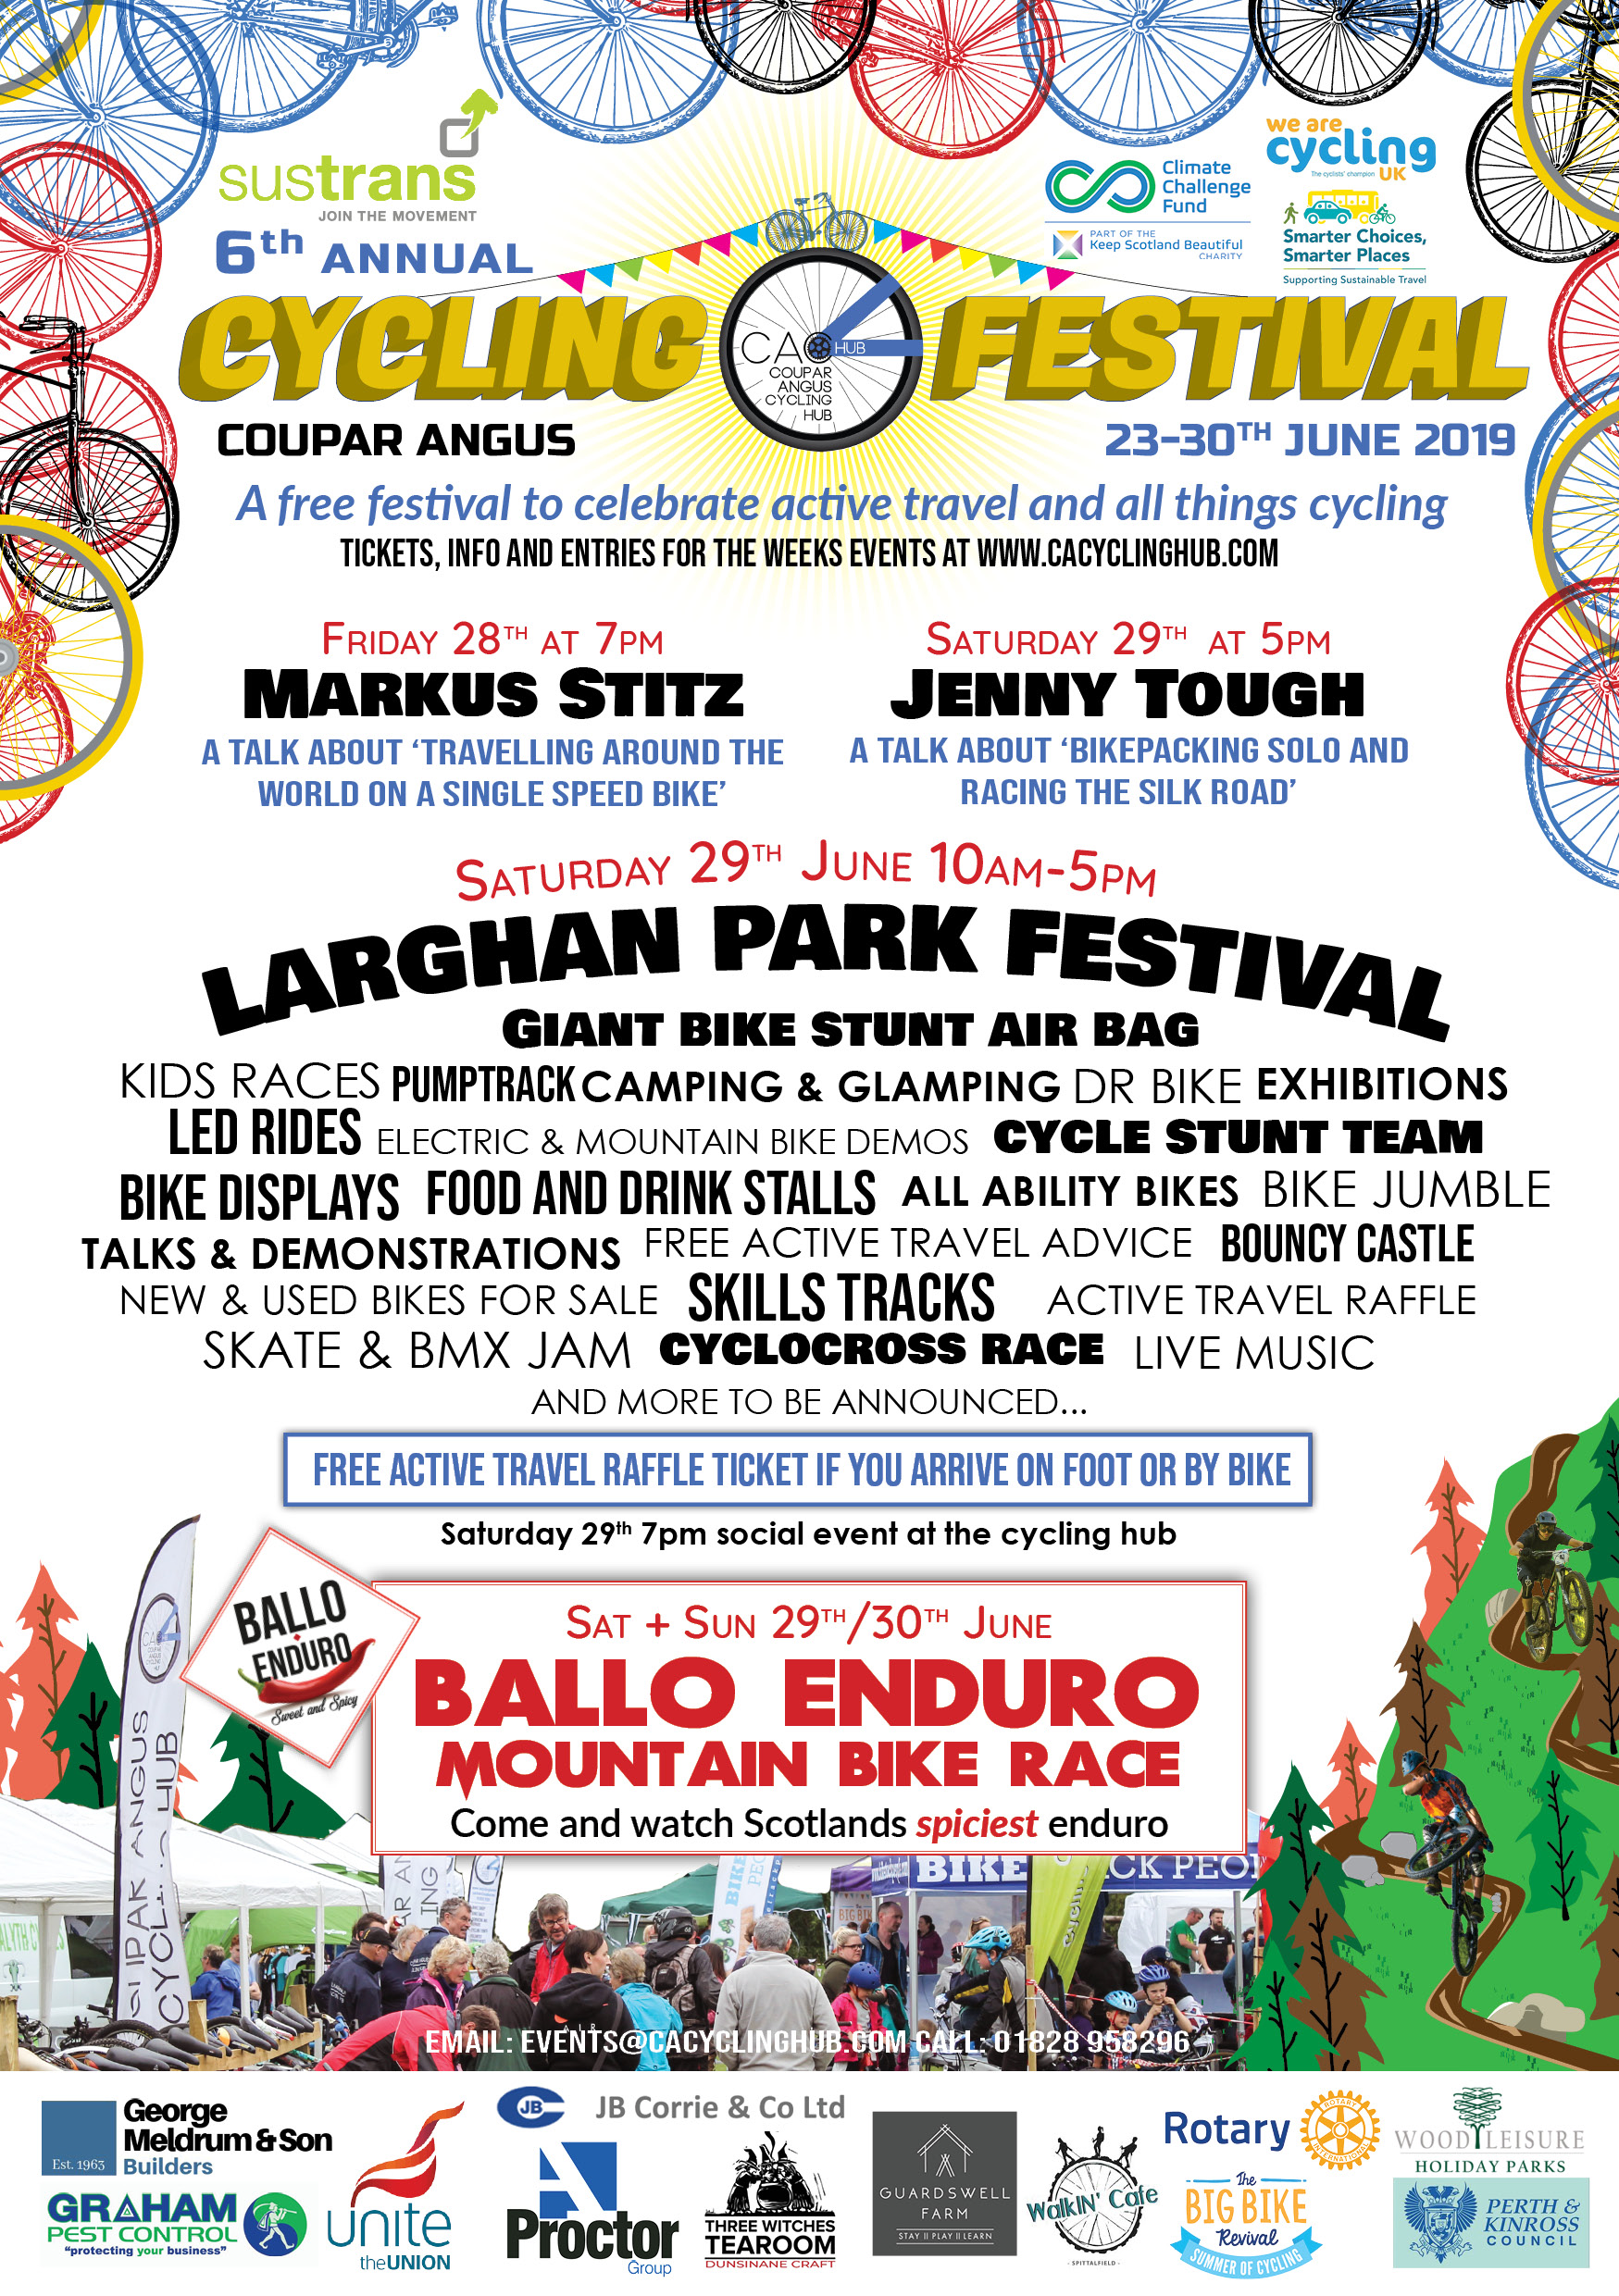 CACYCLING FEST FLYER